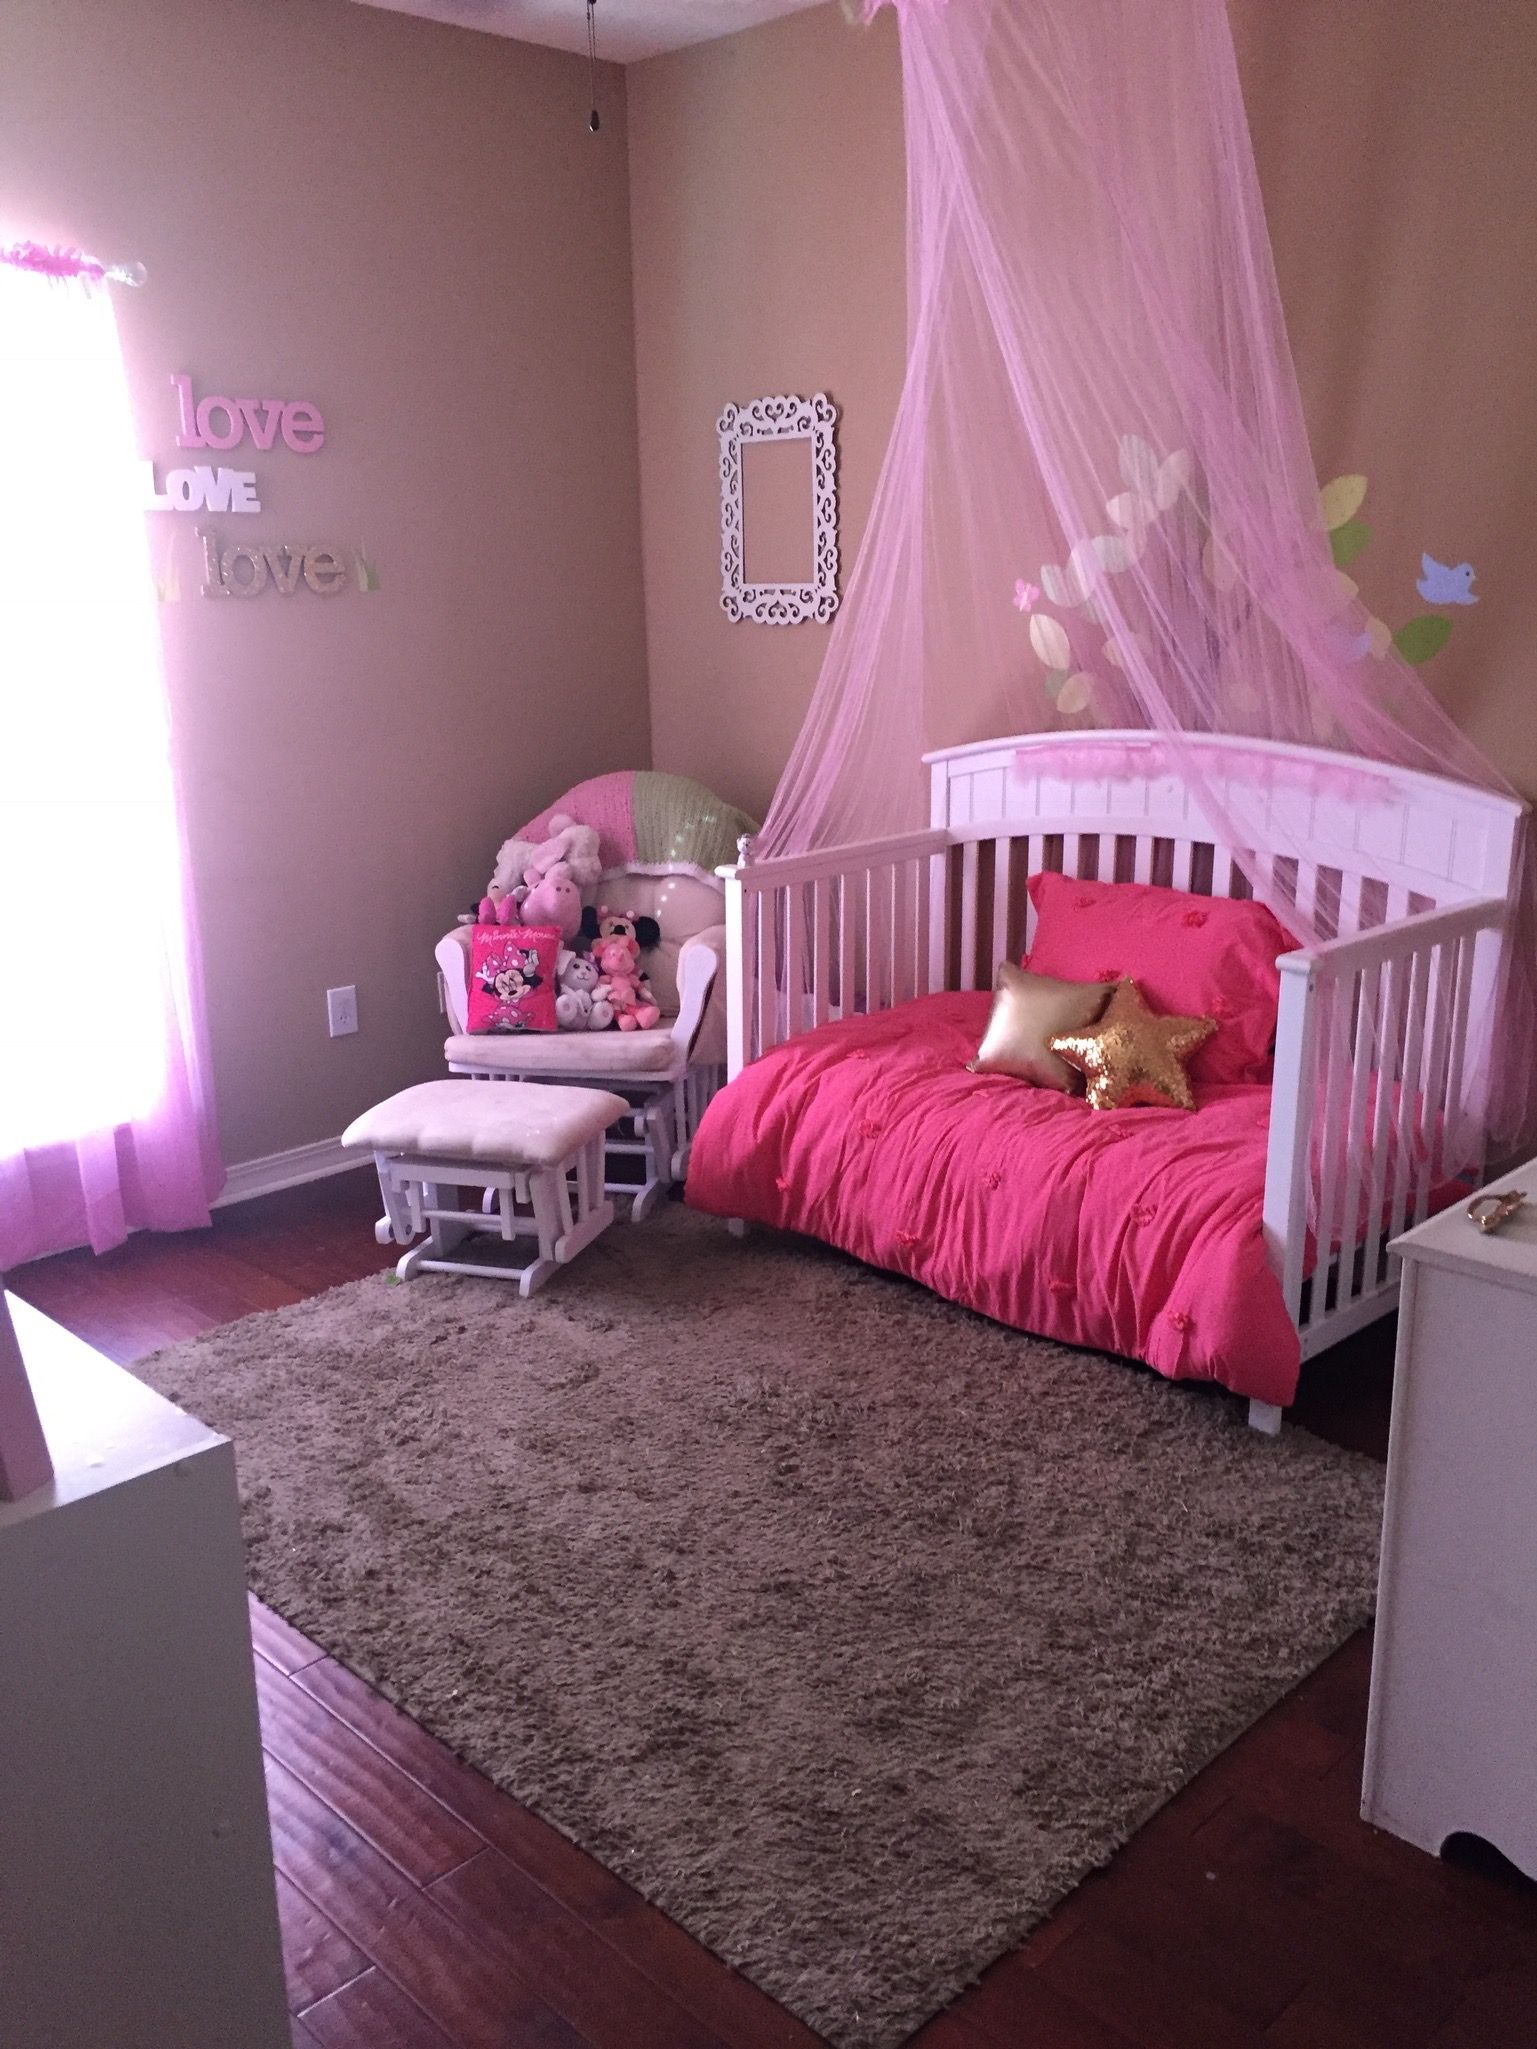 Princess Bedroom Toddler Girls Bedroom Diy Pink Love Www Ontheatrain Com Toddler Room Decor Princess Room Decor Diy Girls Bedroom